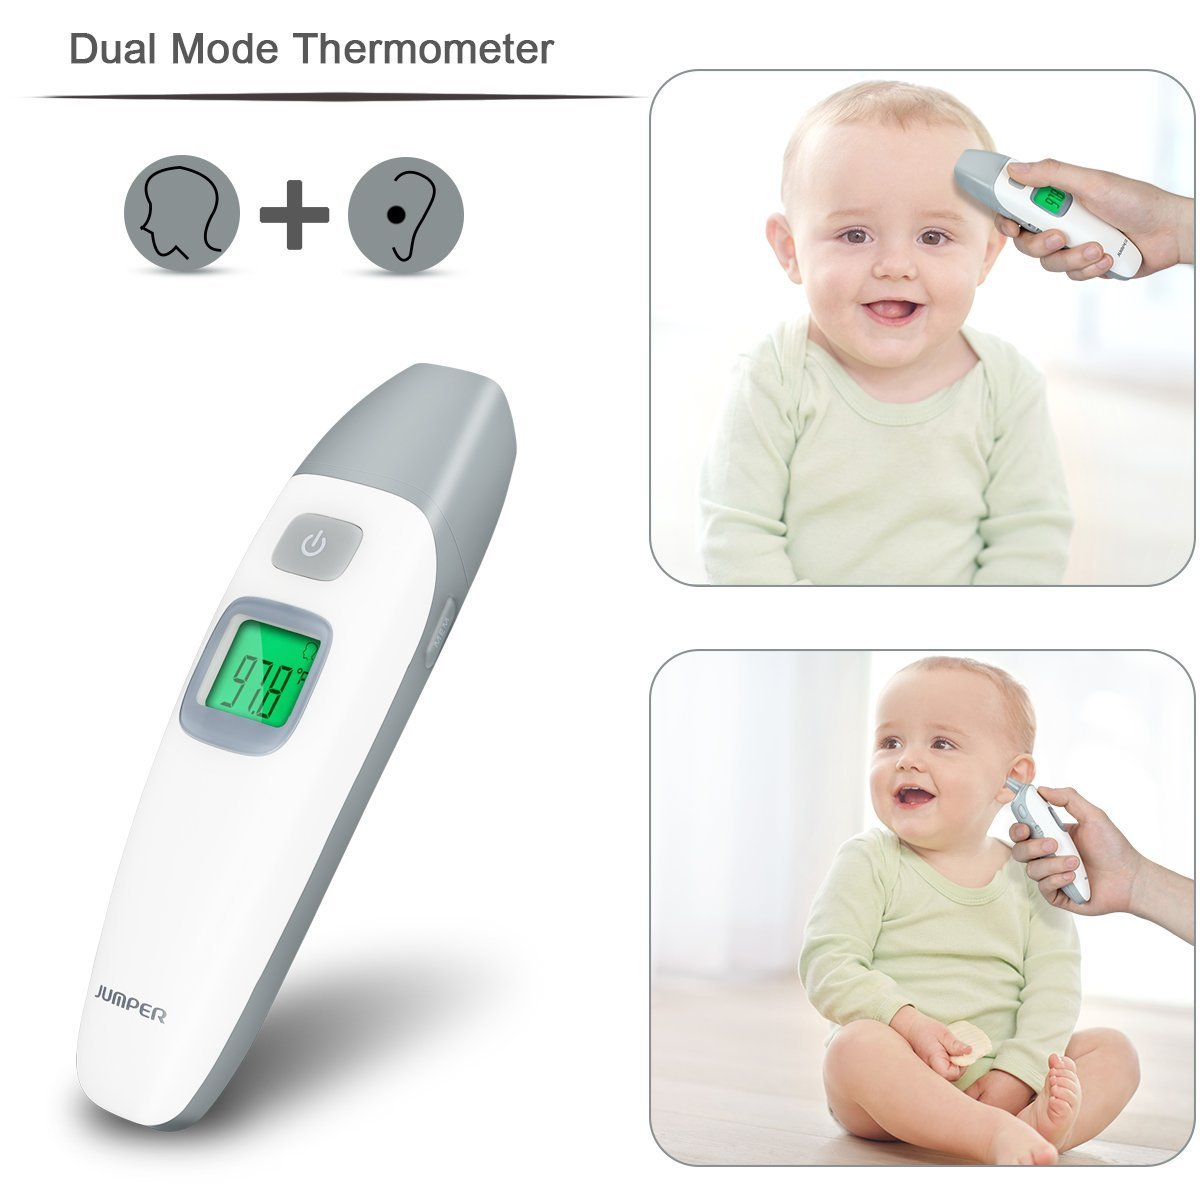 Amazon.com : Medical Digital Ear Black Thermometer, Ear Thermometer for Kids, Non Contact Infrared Digital Forehead FDA and CE Certifications ...